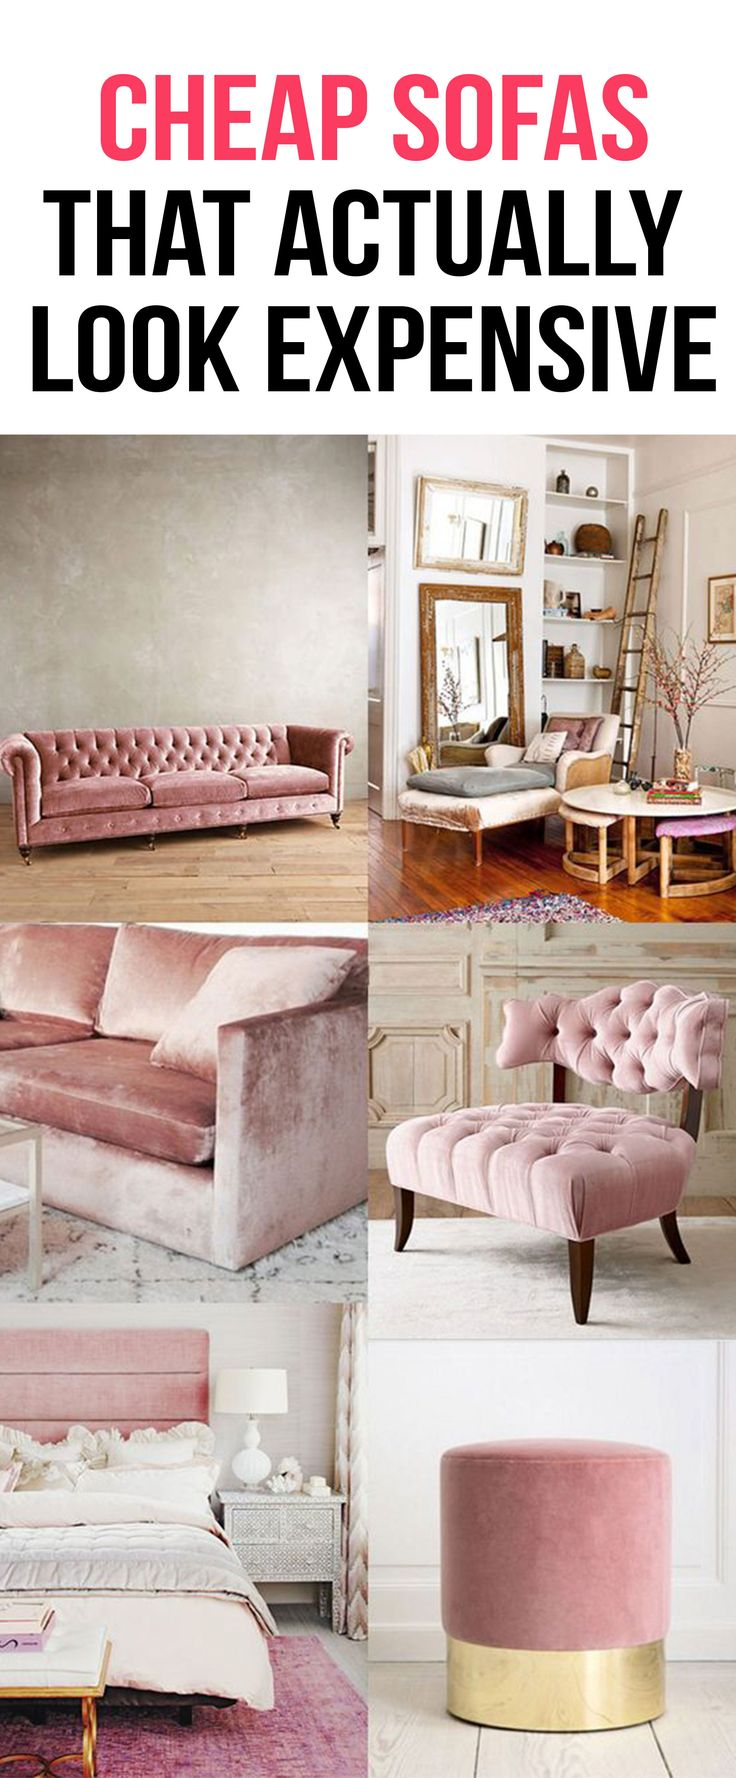 Cheap Sofas That Actually Look Expensive